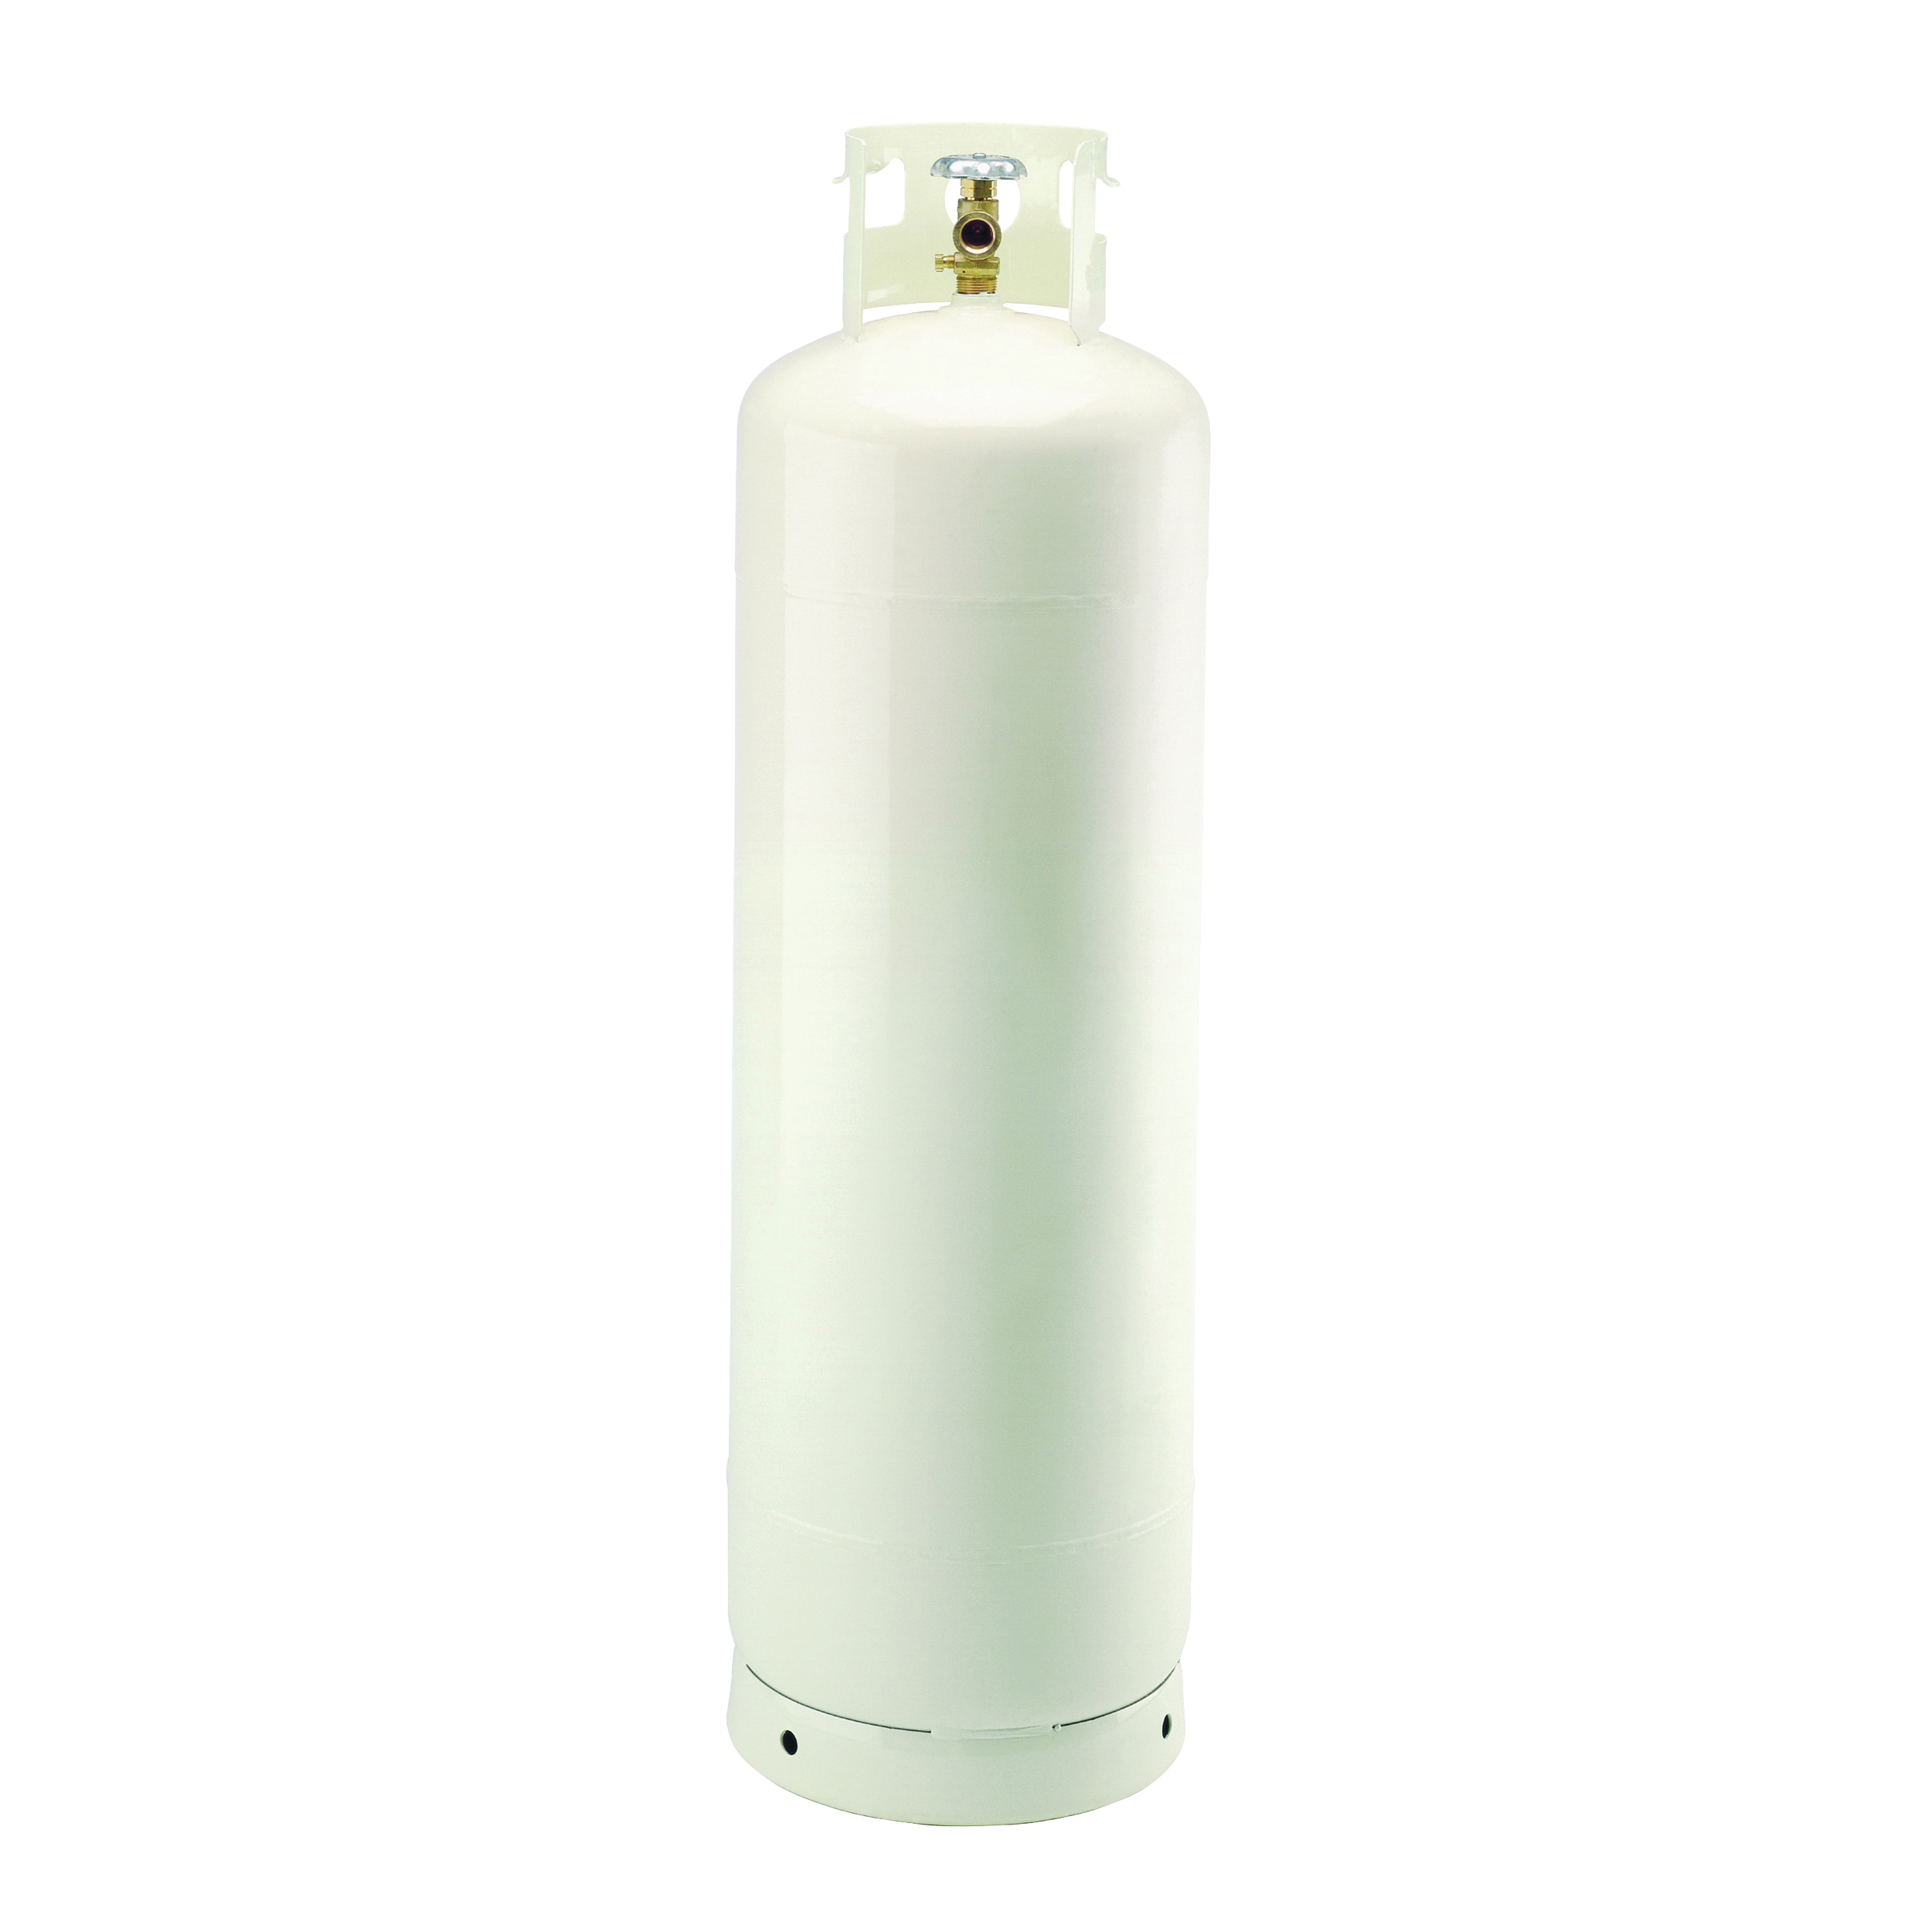 Picture of Worthington 282154/304623 Propane Gas Cylinder, 23.6 gal Tank, Steel